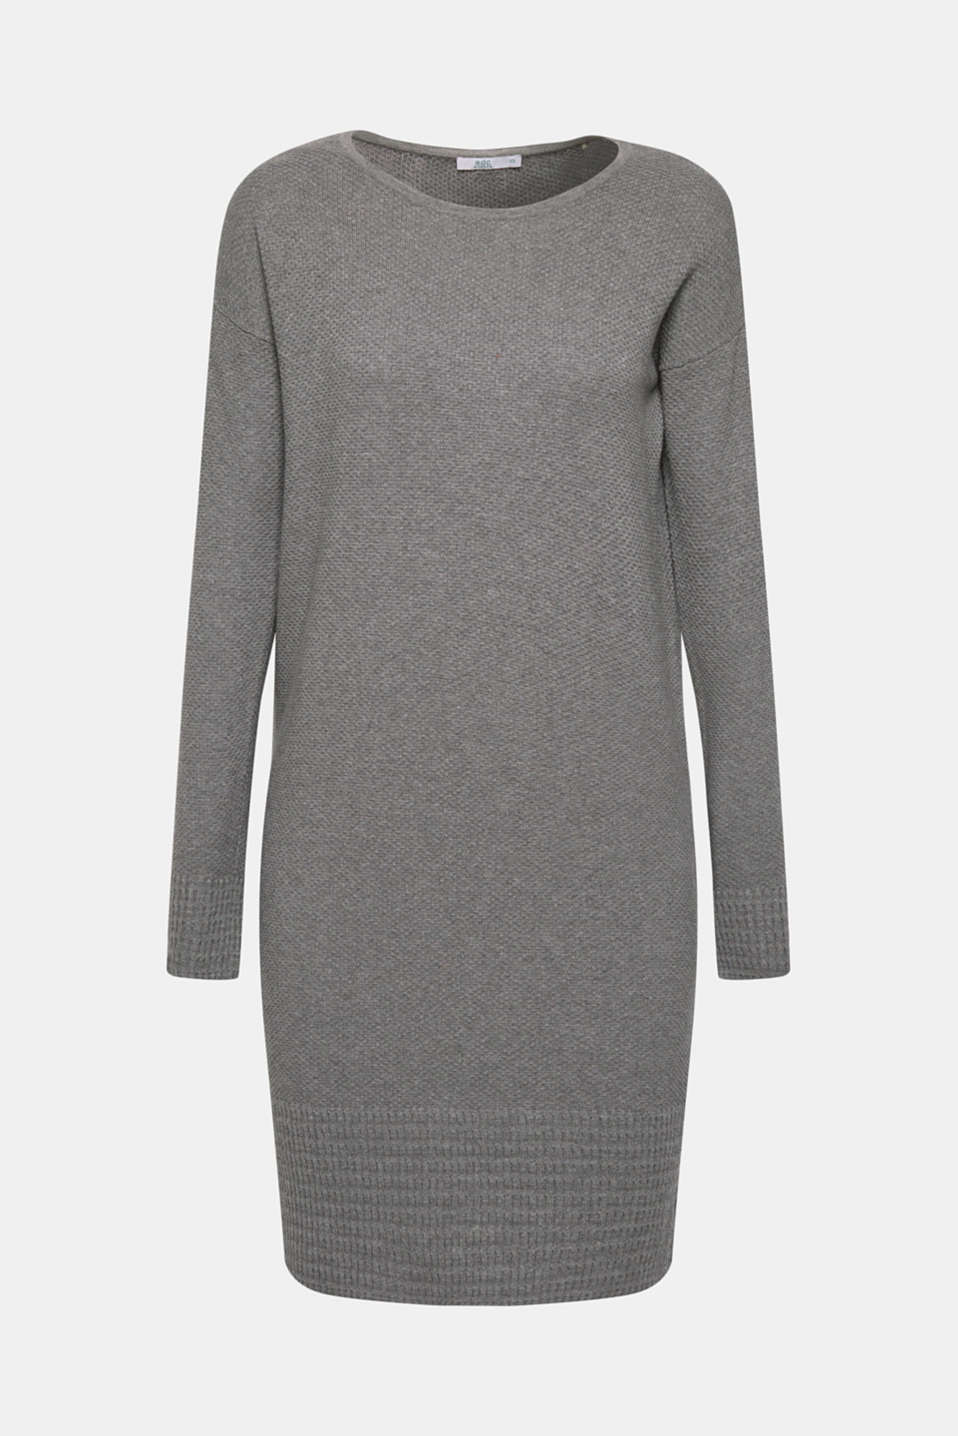 Textured knitted dress with organic cotton, GUNMETAL 5, detail image number 6